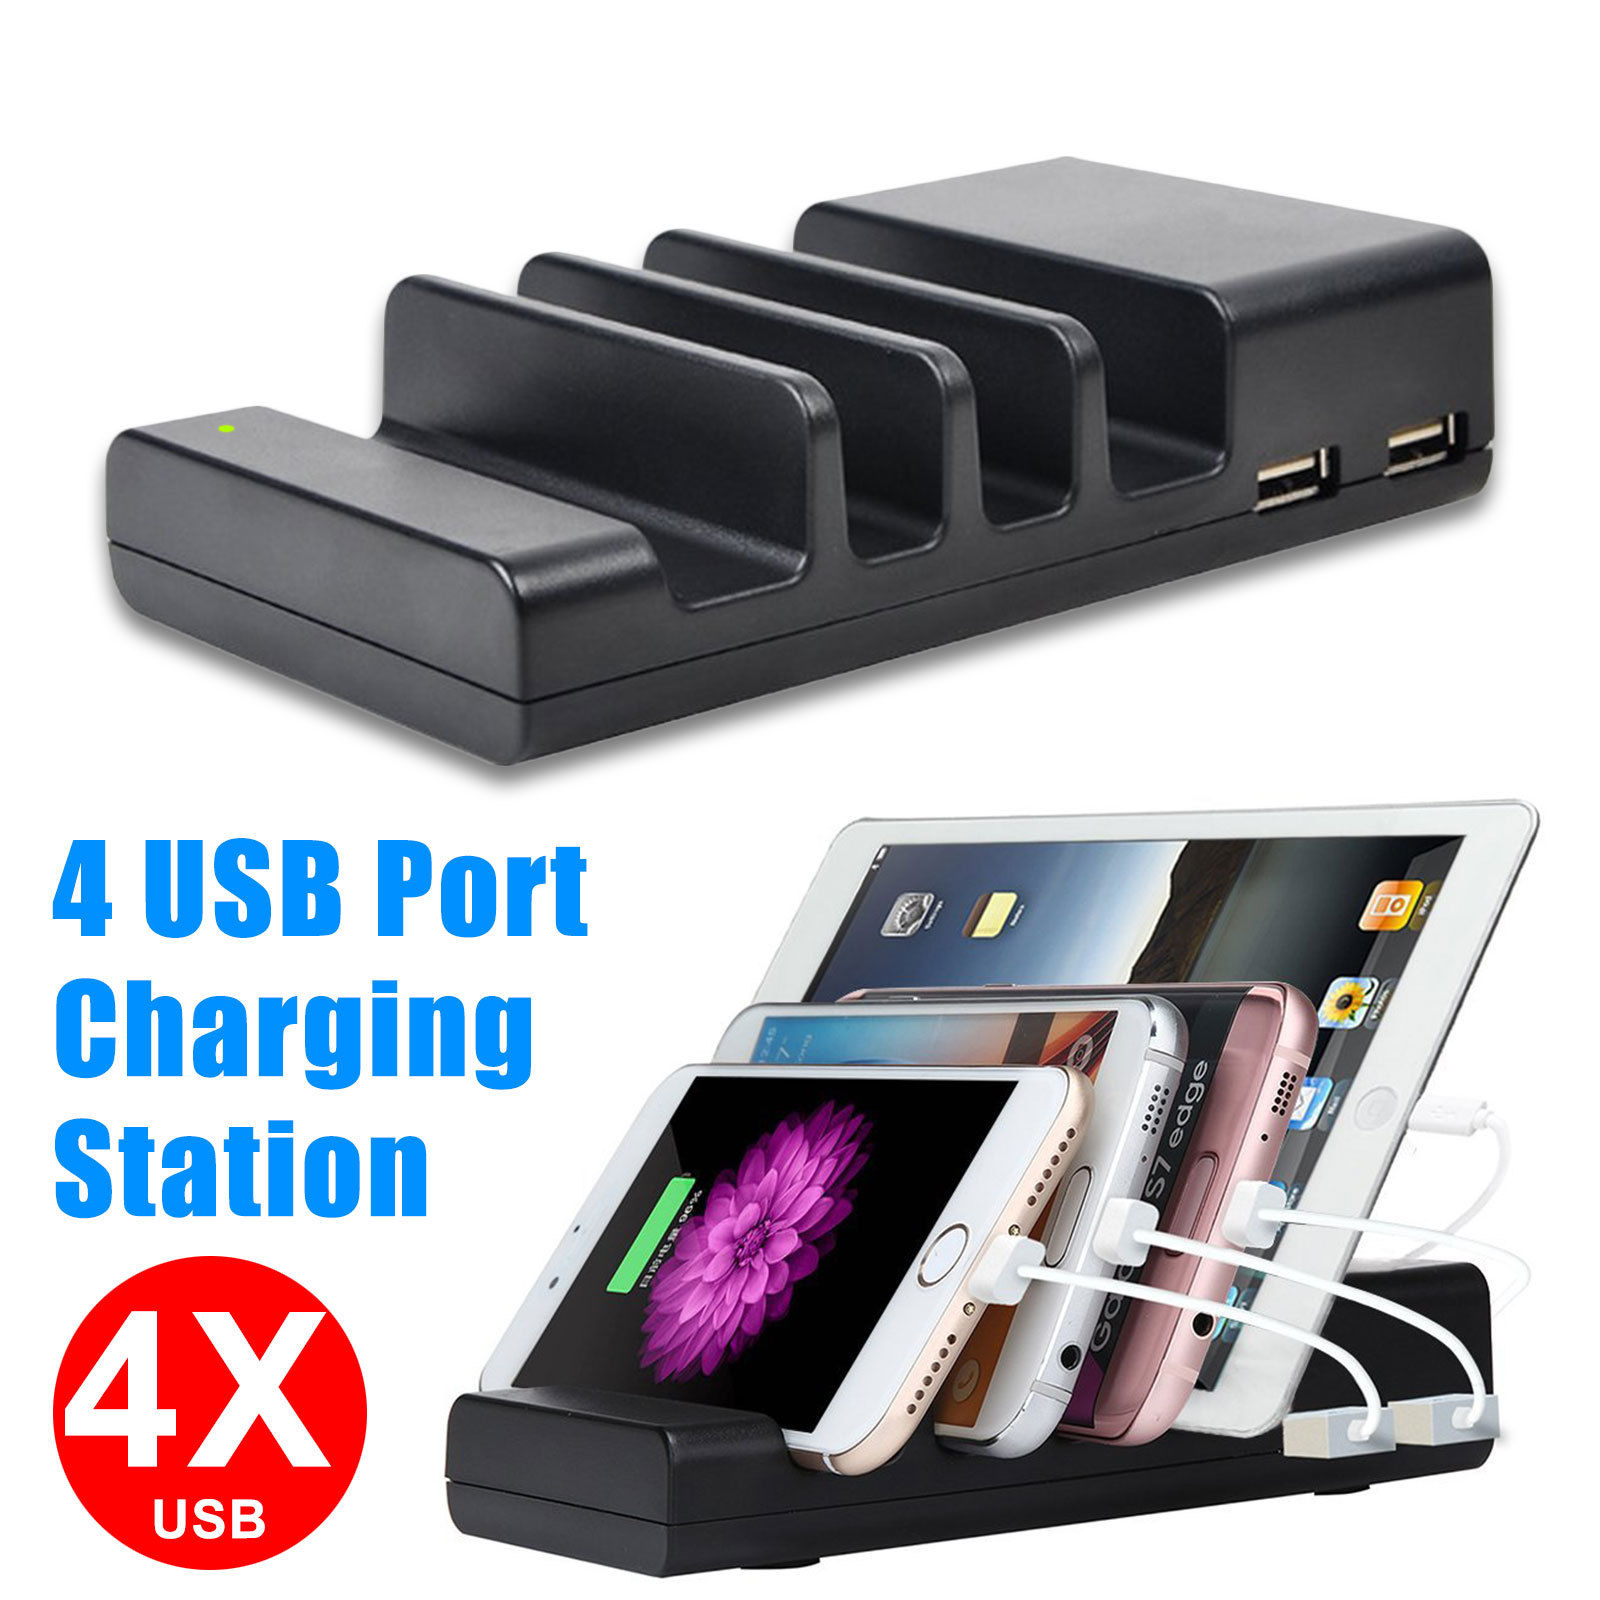 TSV 4-Port Multi USB Charging Station Stand Desktop Charger Dock For Cellphone Smartphone Tablet